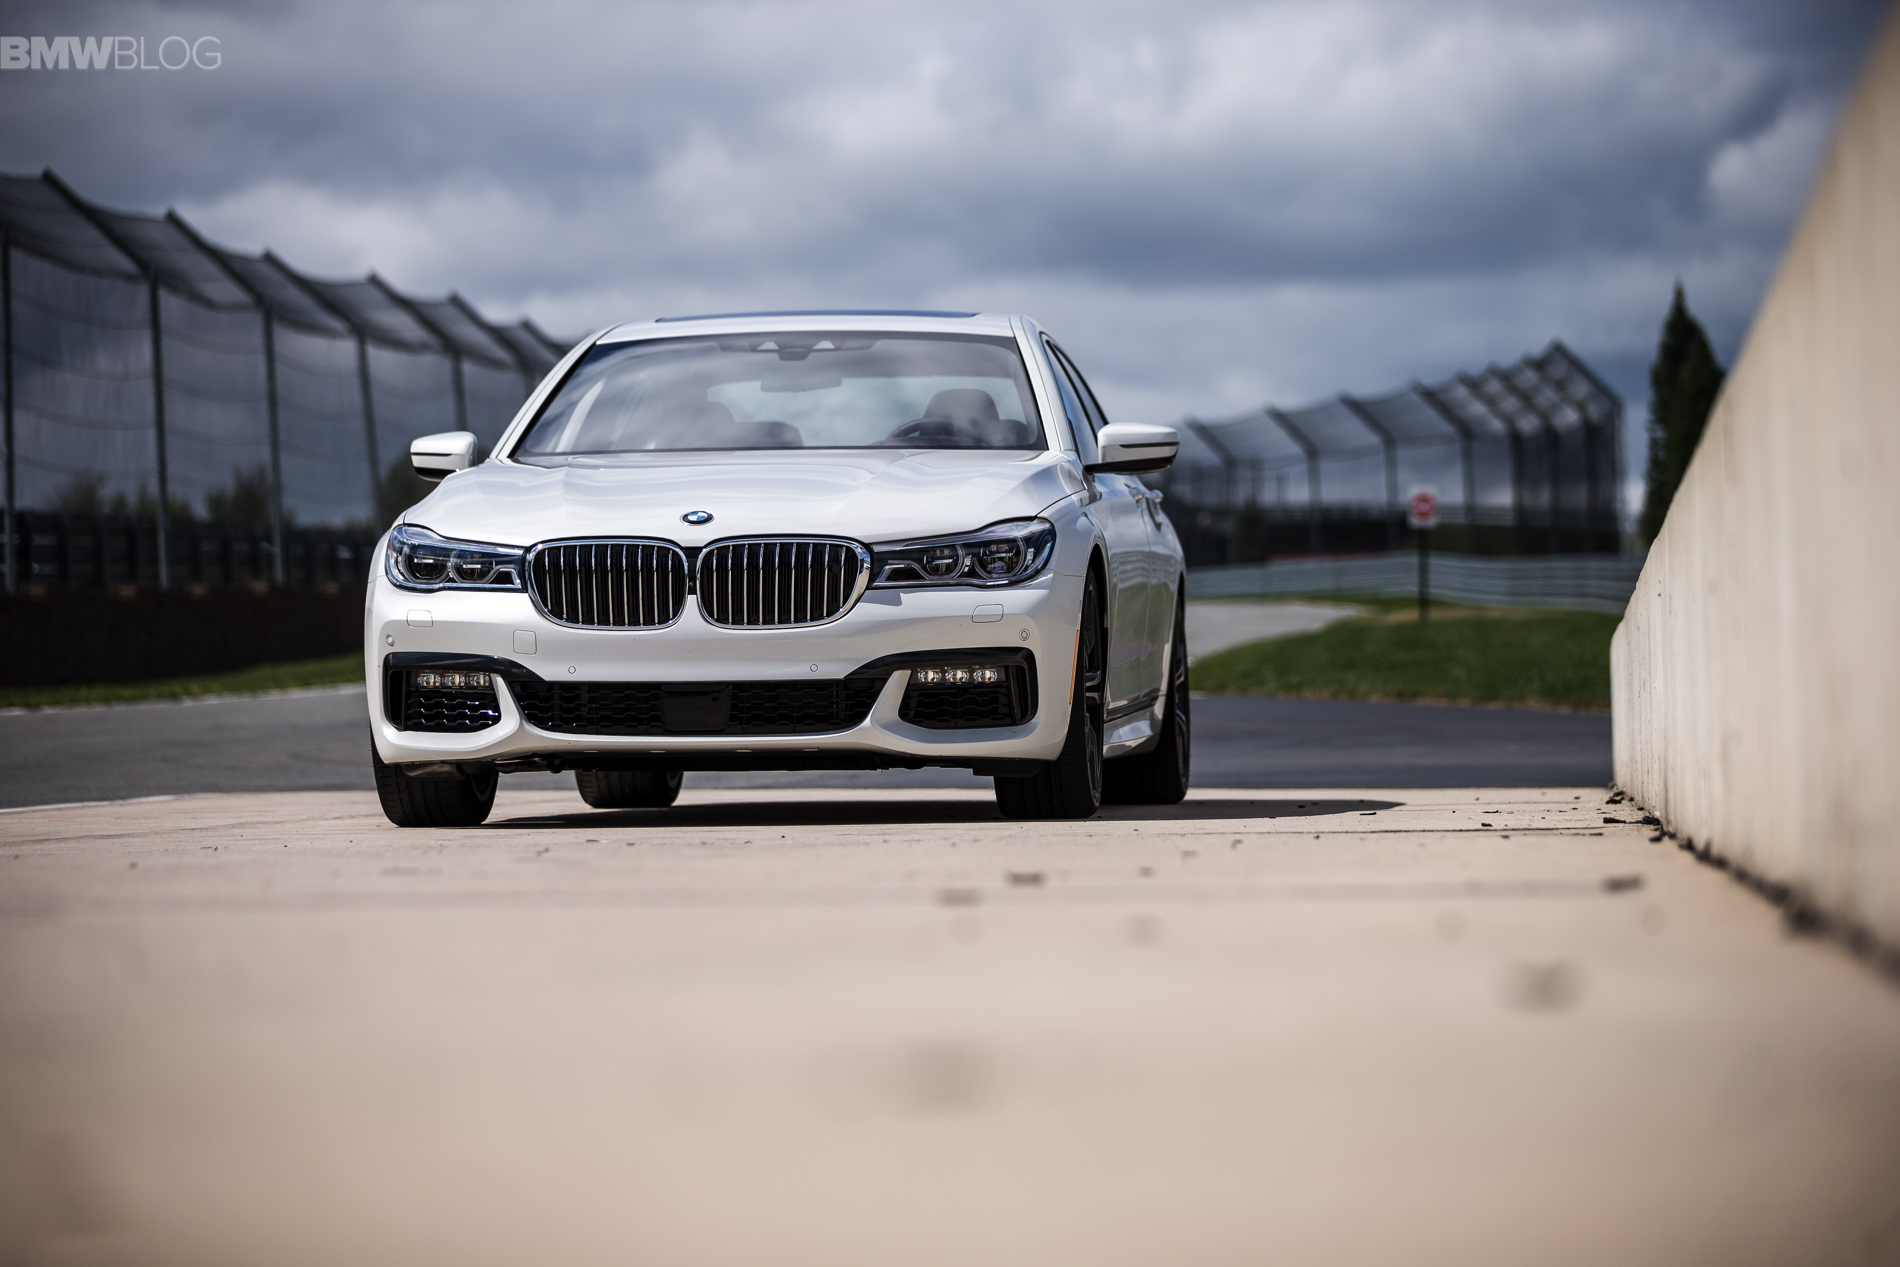 2016 bmw 7 series launch new york images 1900x 1200 84